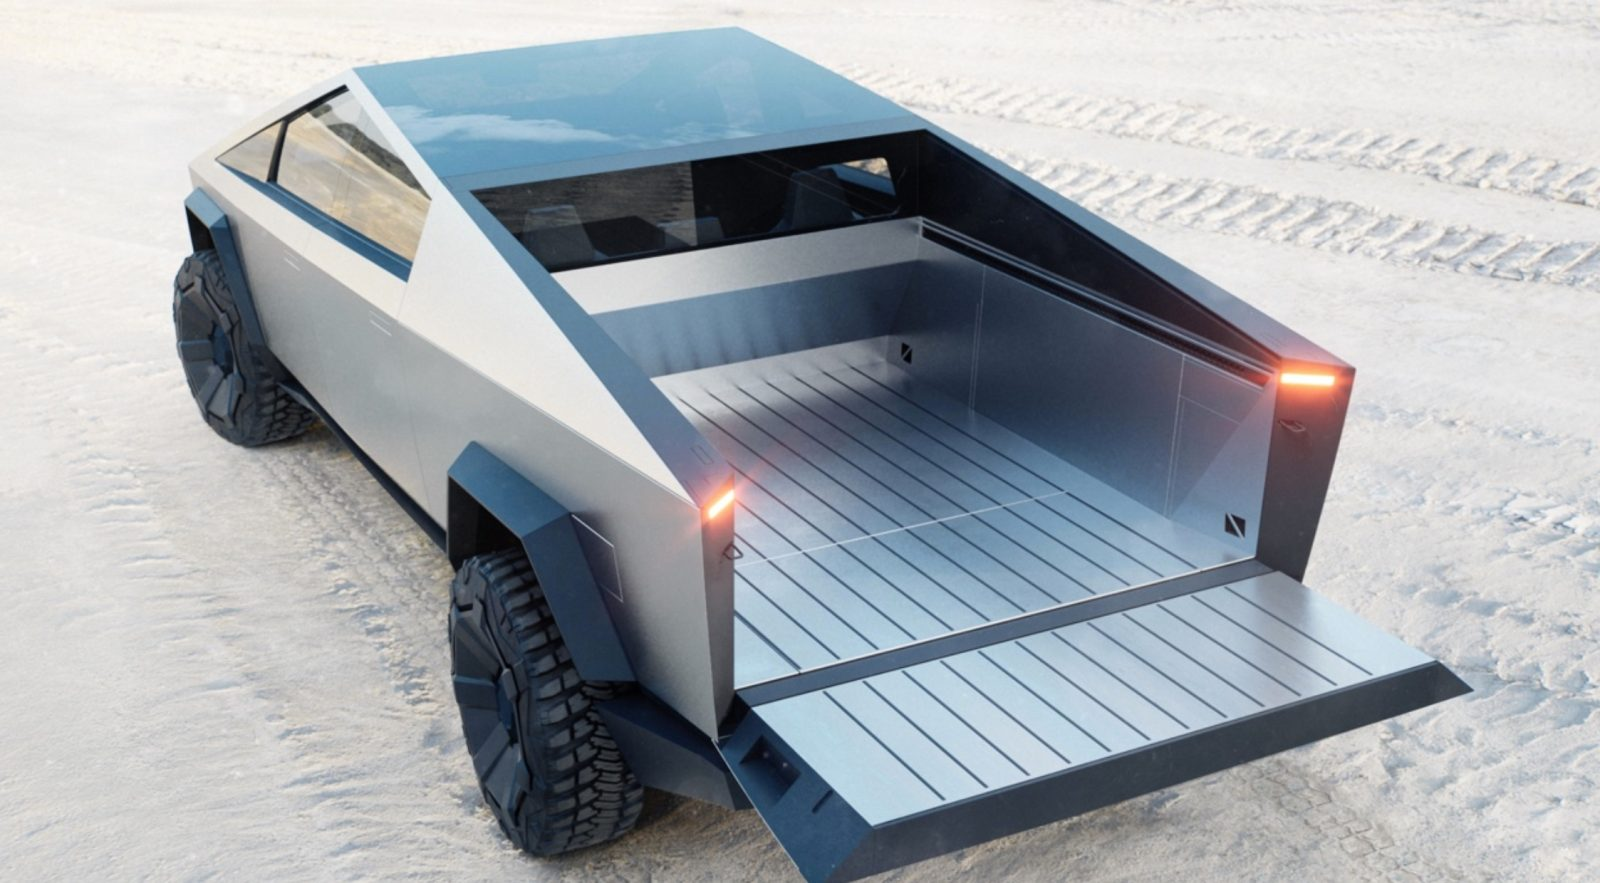 Elon Musk talks Tesla Cybertruck specs – will it fit in your garage?